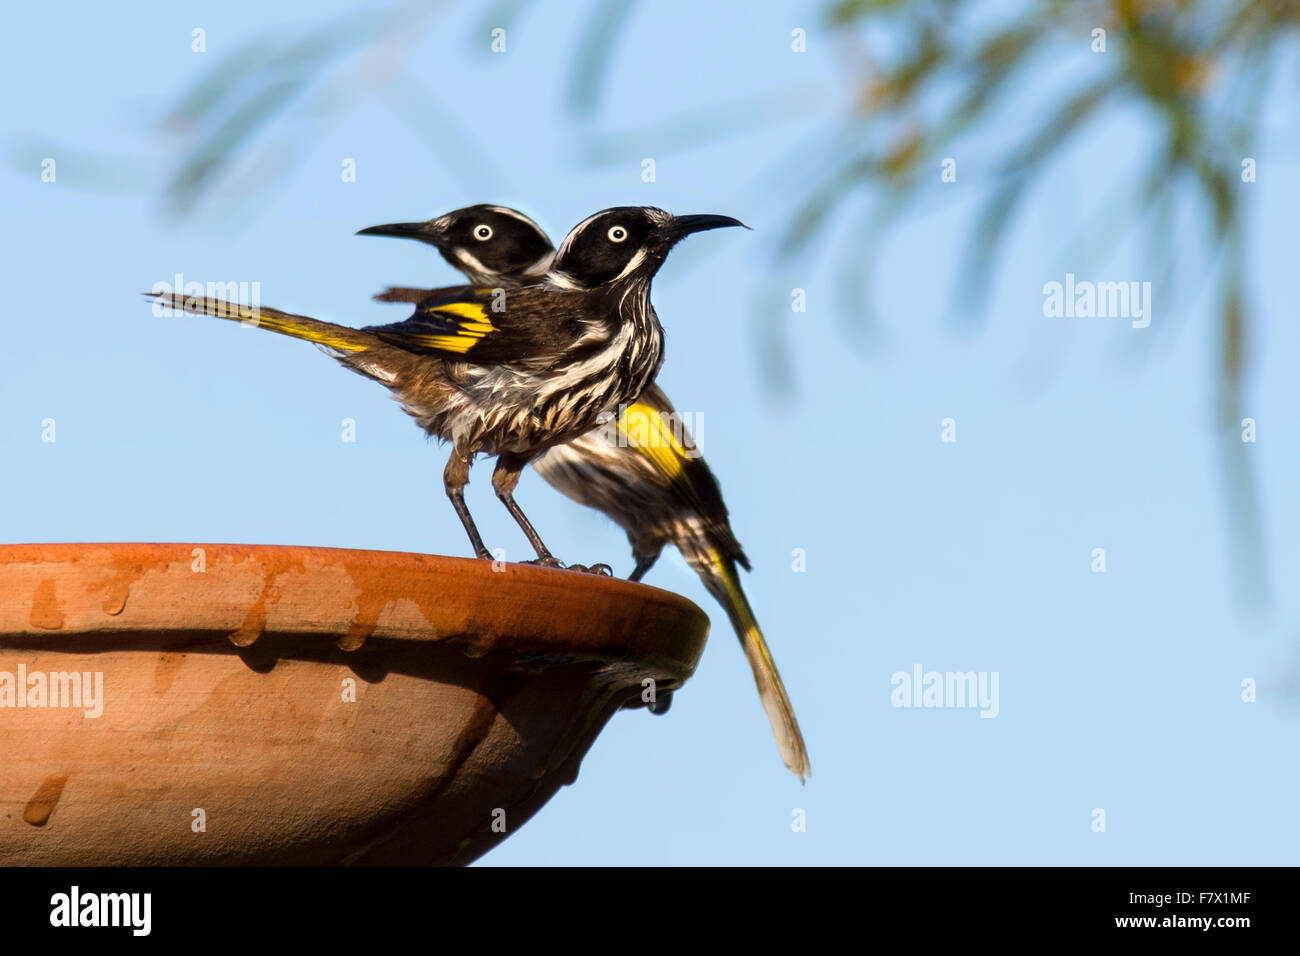 New Holland Honeyeater birds perched on bird bath, Australia - Stock Image